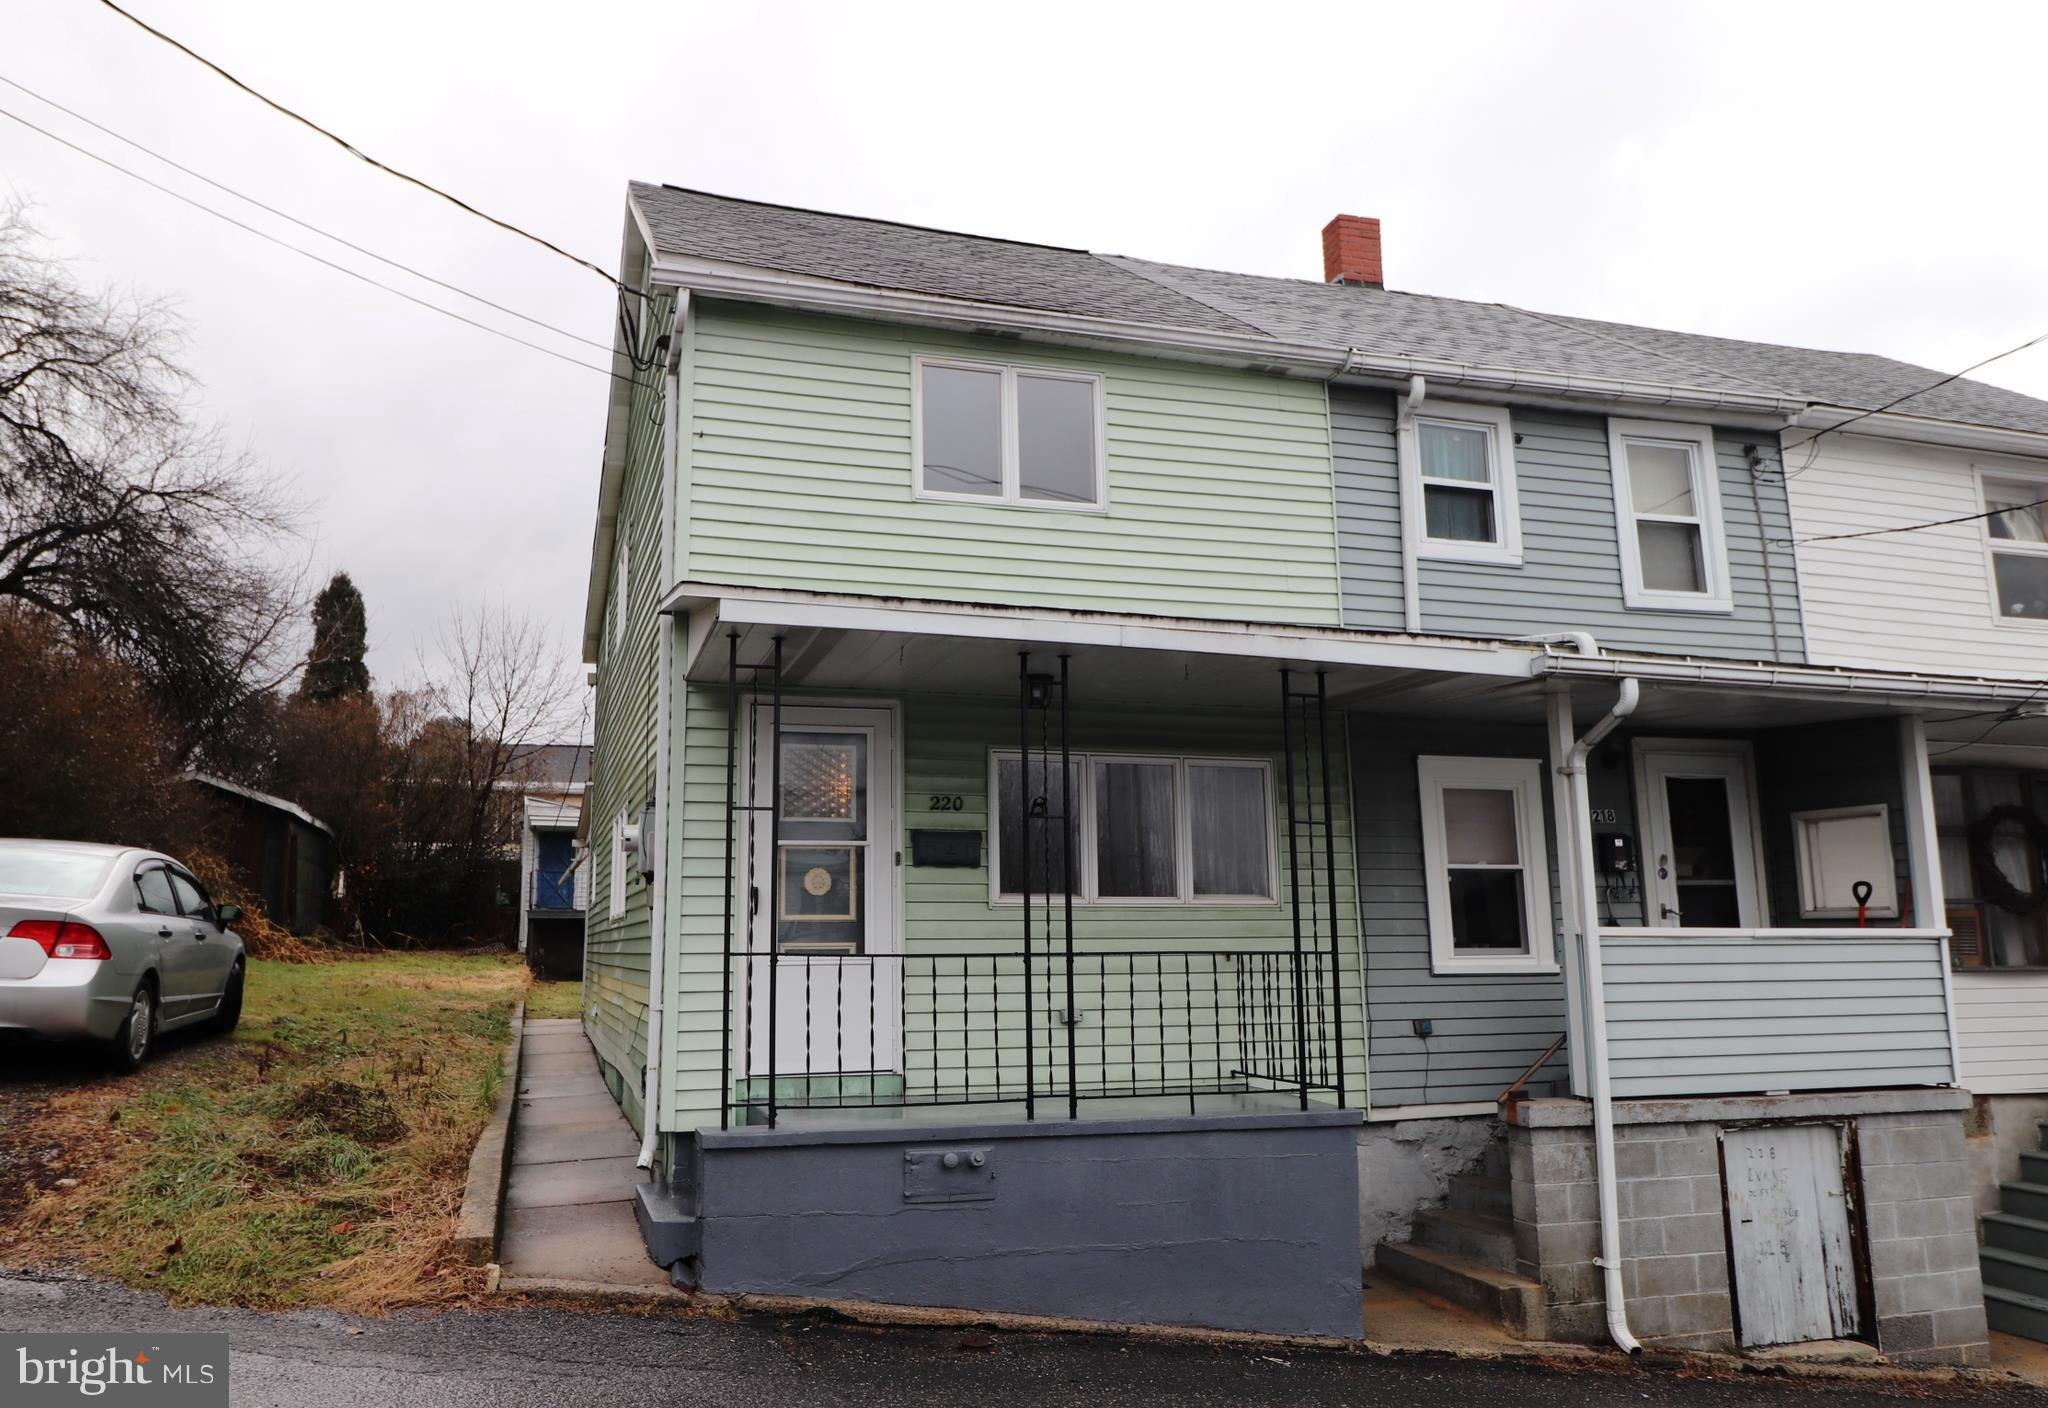 220 FISHER AVENUE, COALDALE, PA 18218